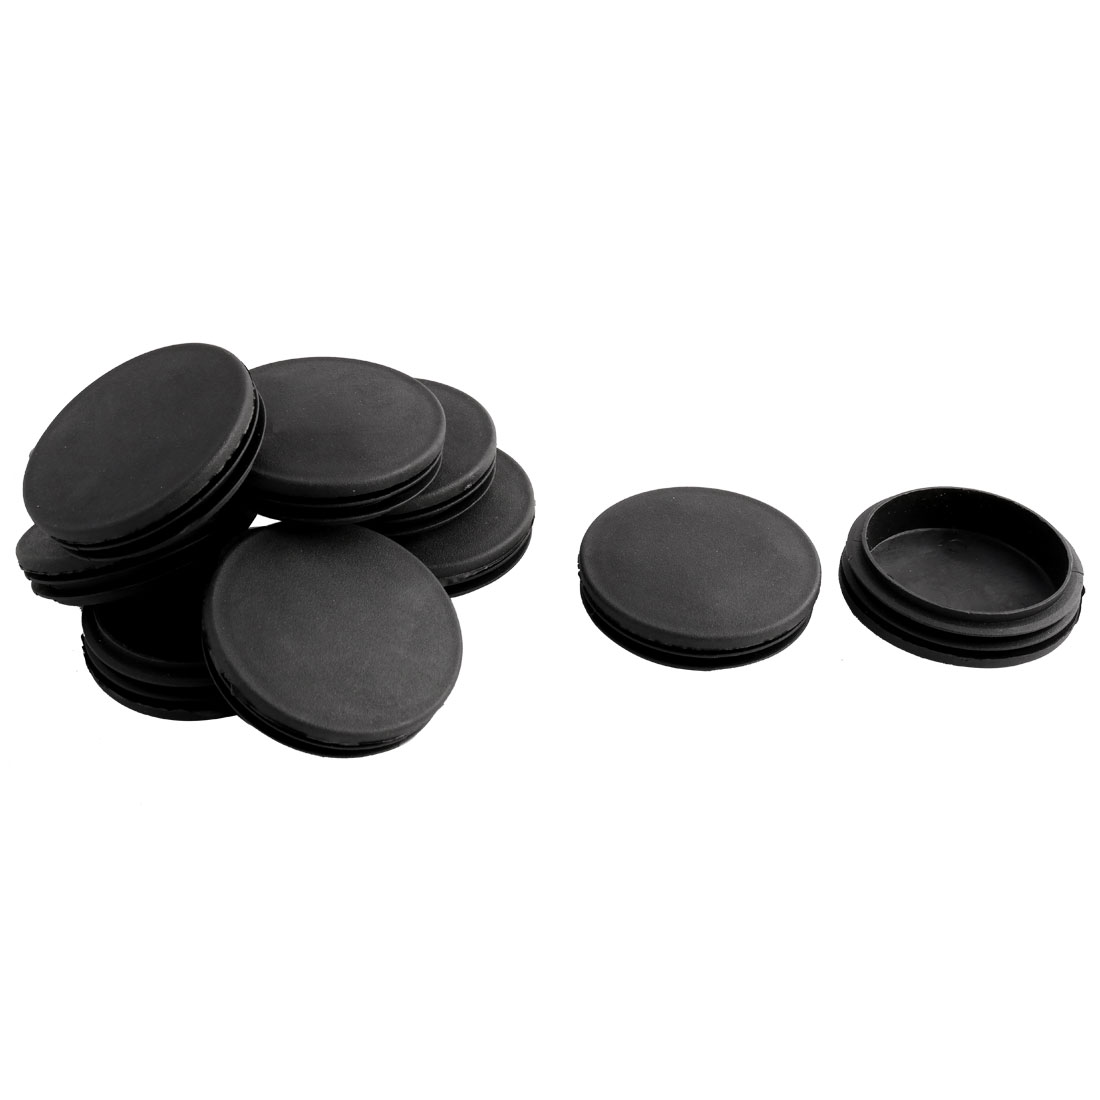 Household Office Plastic Round Furniture Legs Tube Insert Black 74mm Dia 10 Pcs